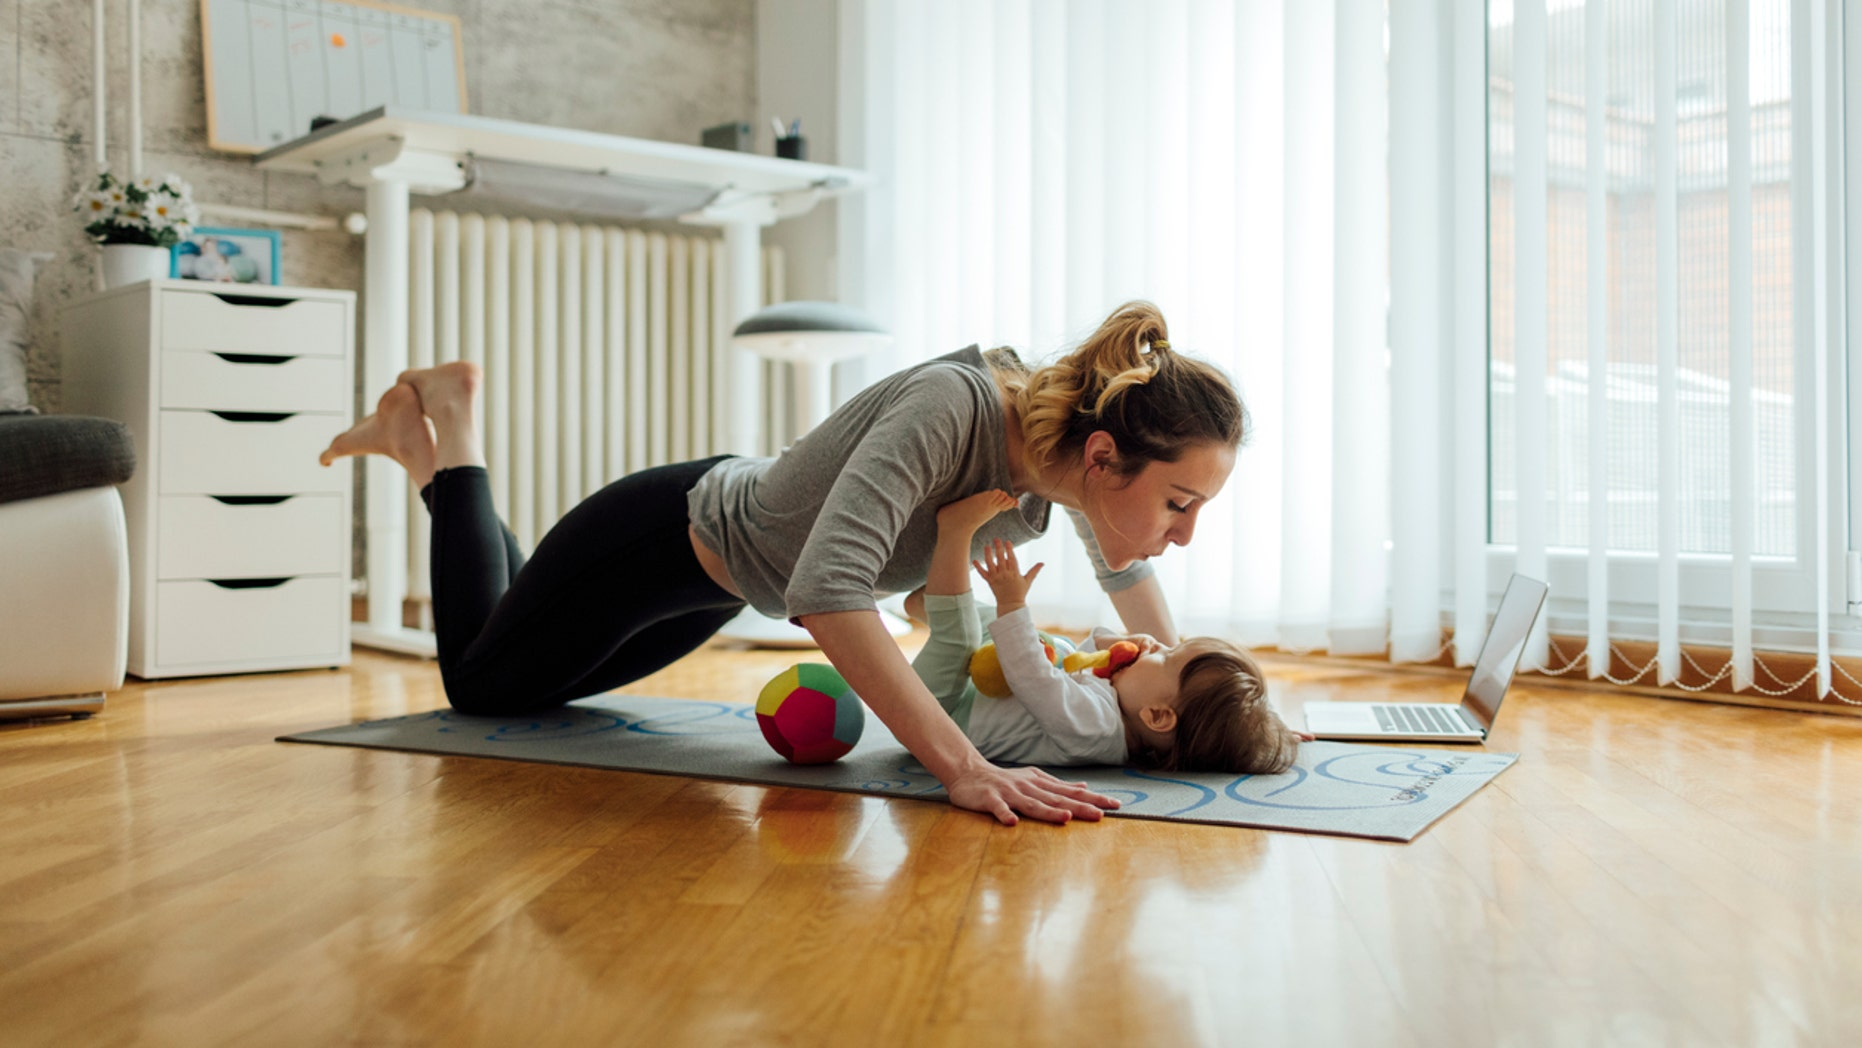 Shot of an attractive young woman with her baby girl while doing exercise. Woman working pushups and baby lying on exercise mat. They exercise in a living room. Woman watching exercise on laptop.